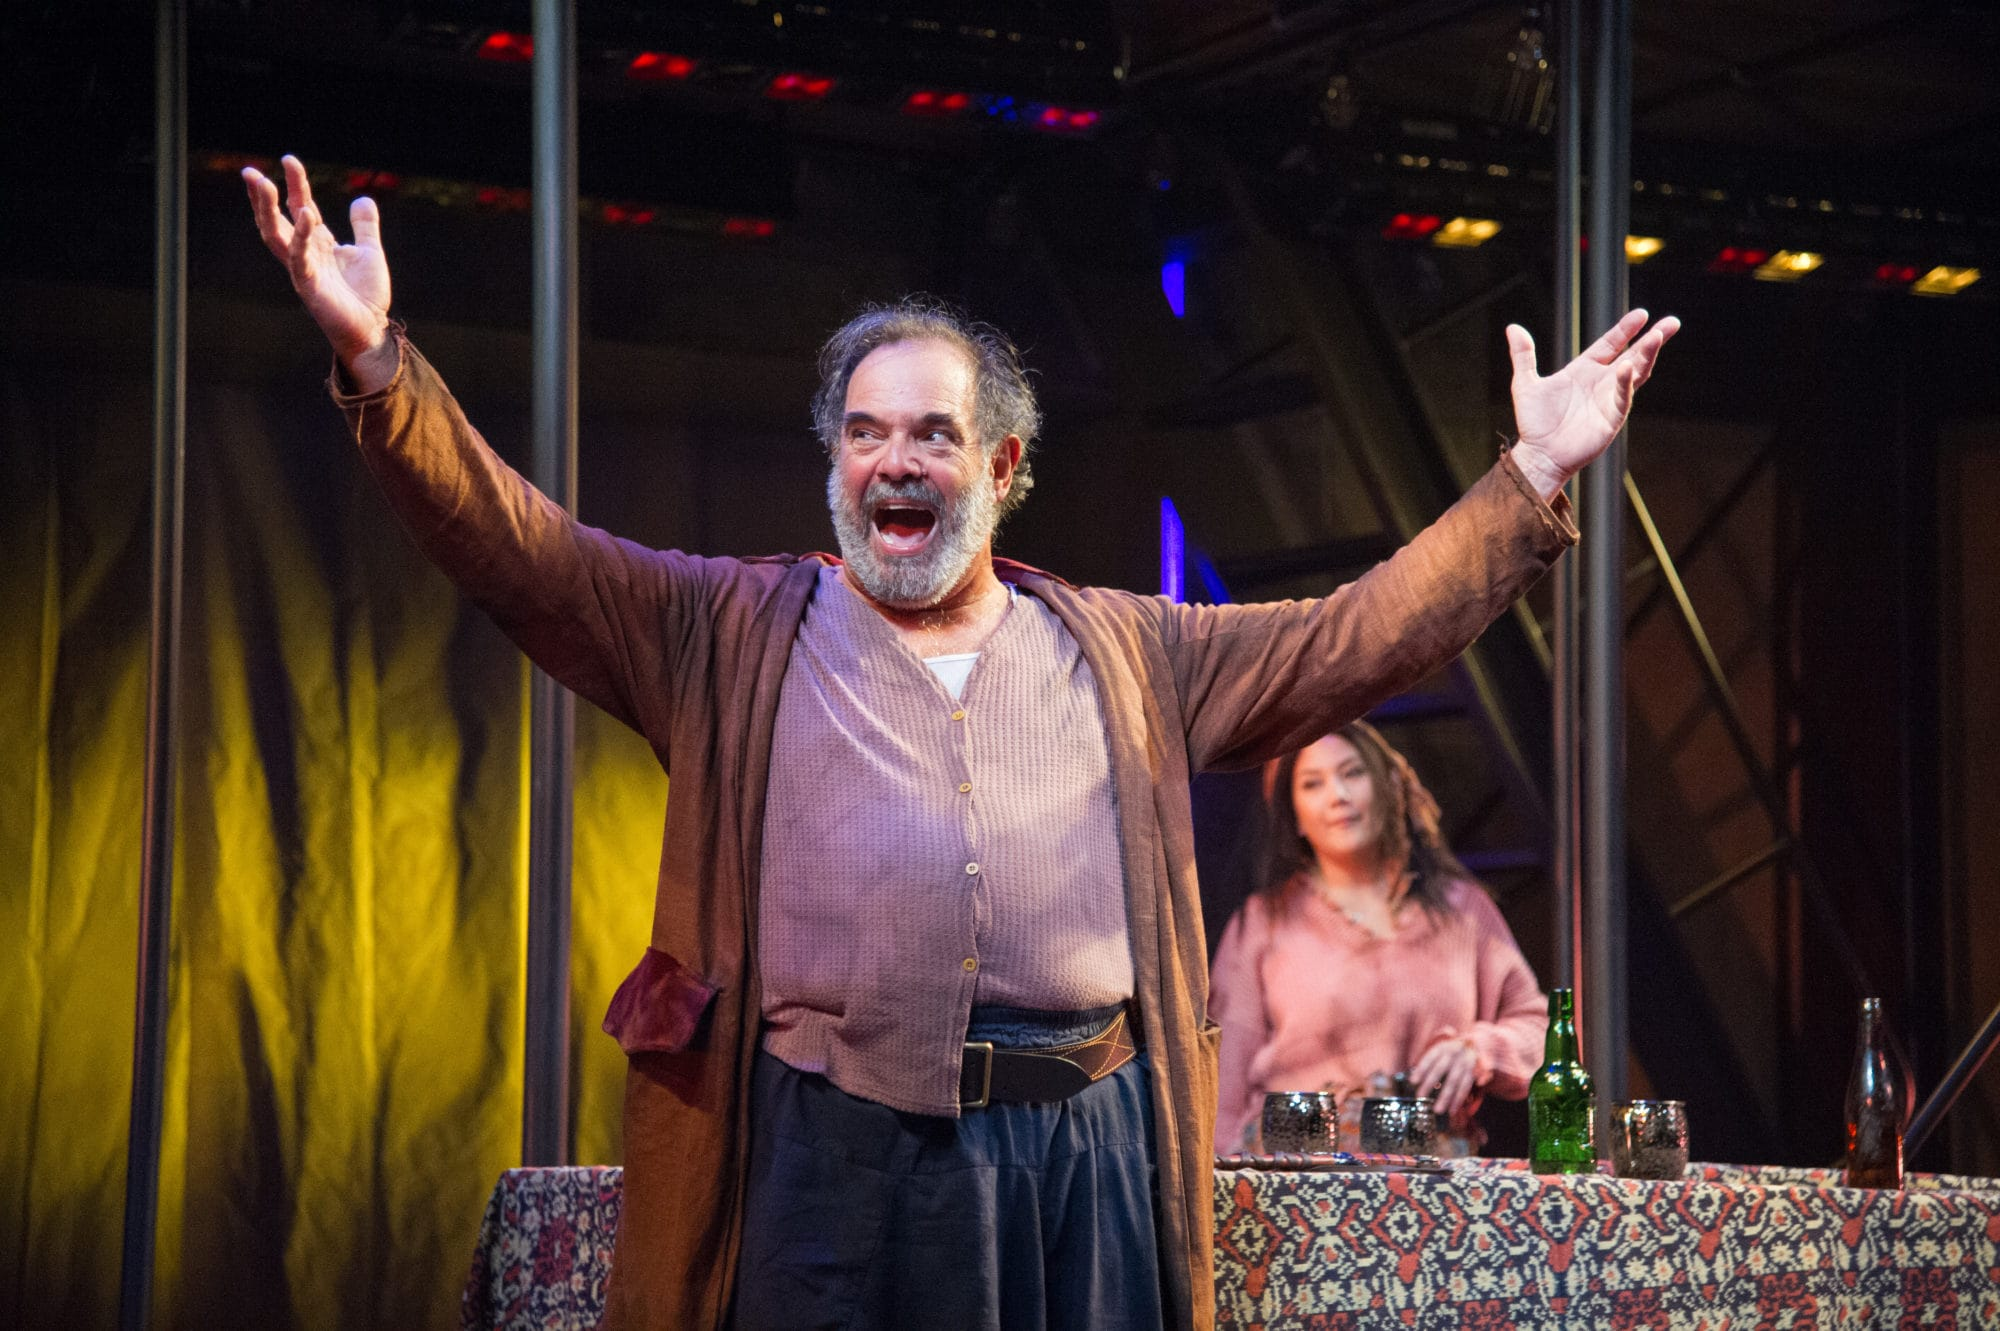 Falstaff (Edward Gero) holds court at the Boar's Head Tavern in Shakespeare's 1 Henry IV. On stage at Folger Theatre, September 3 – October 13, 2019. Photo by C. Stanley Photography.